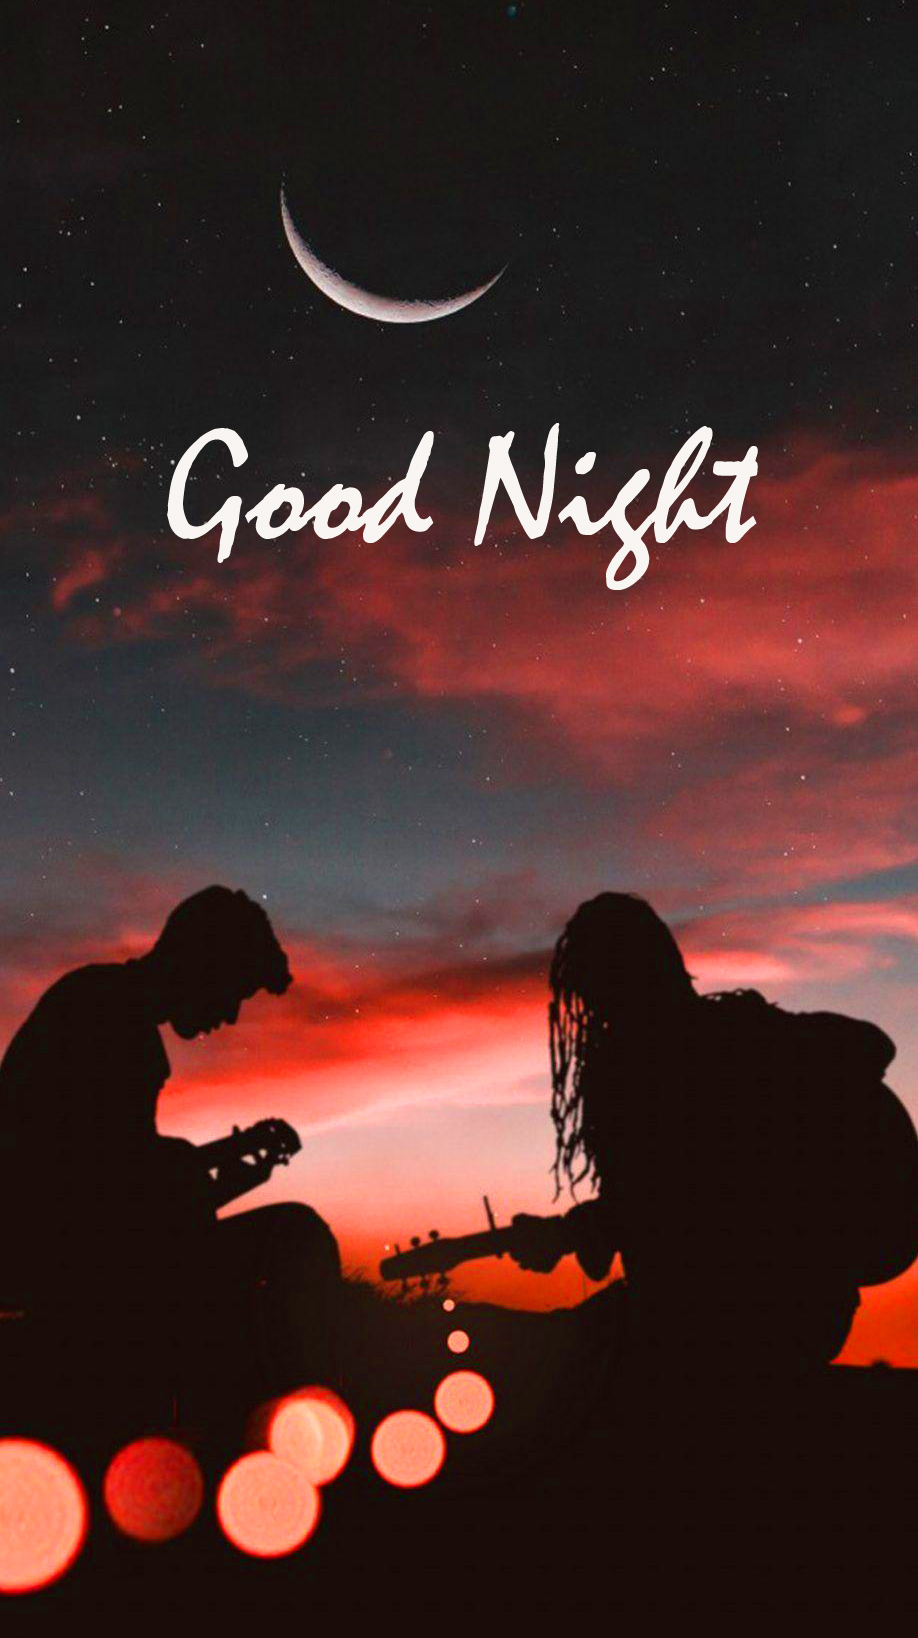 Couple Best Good Night Picture